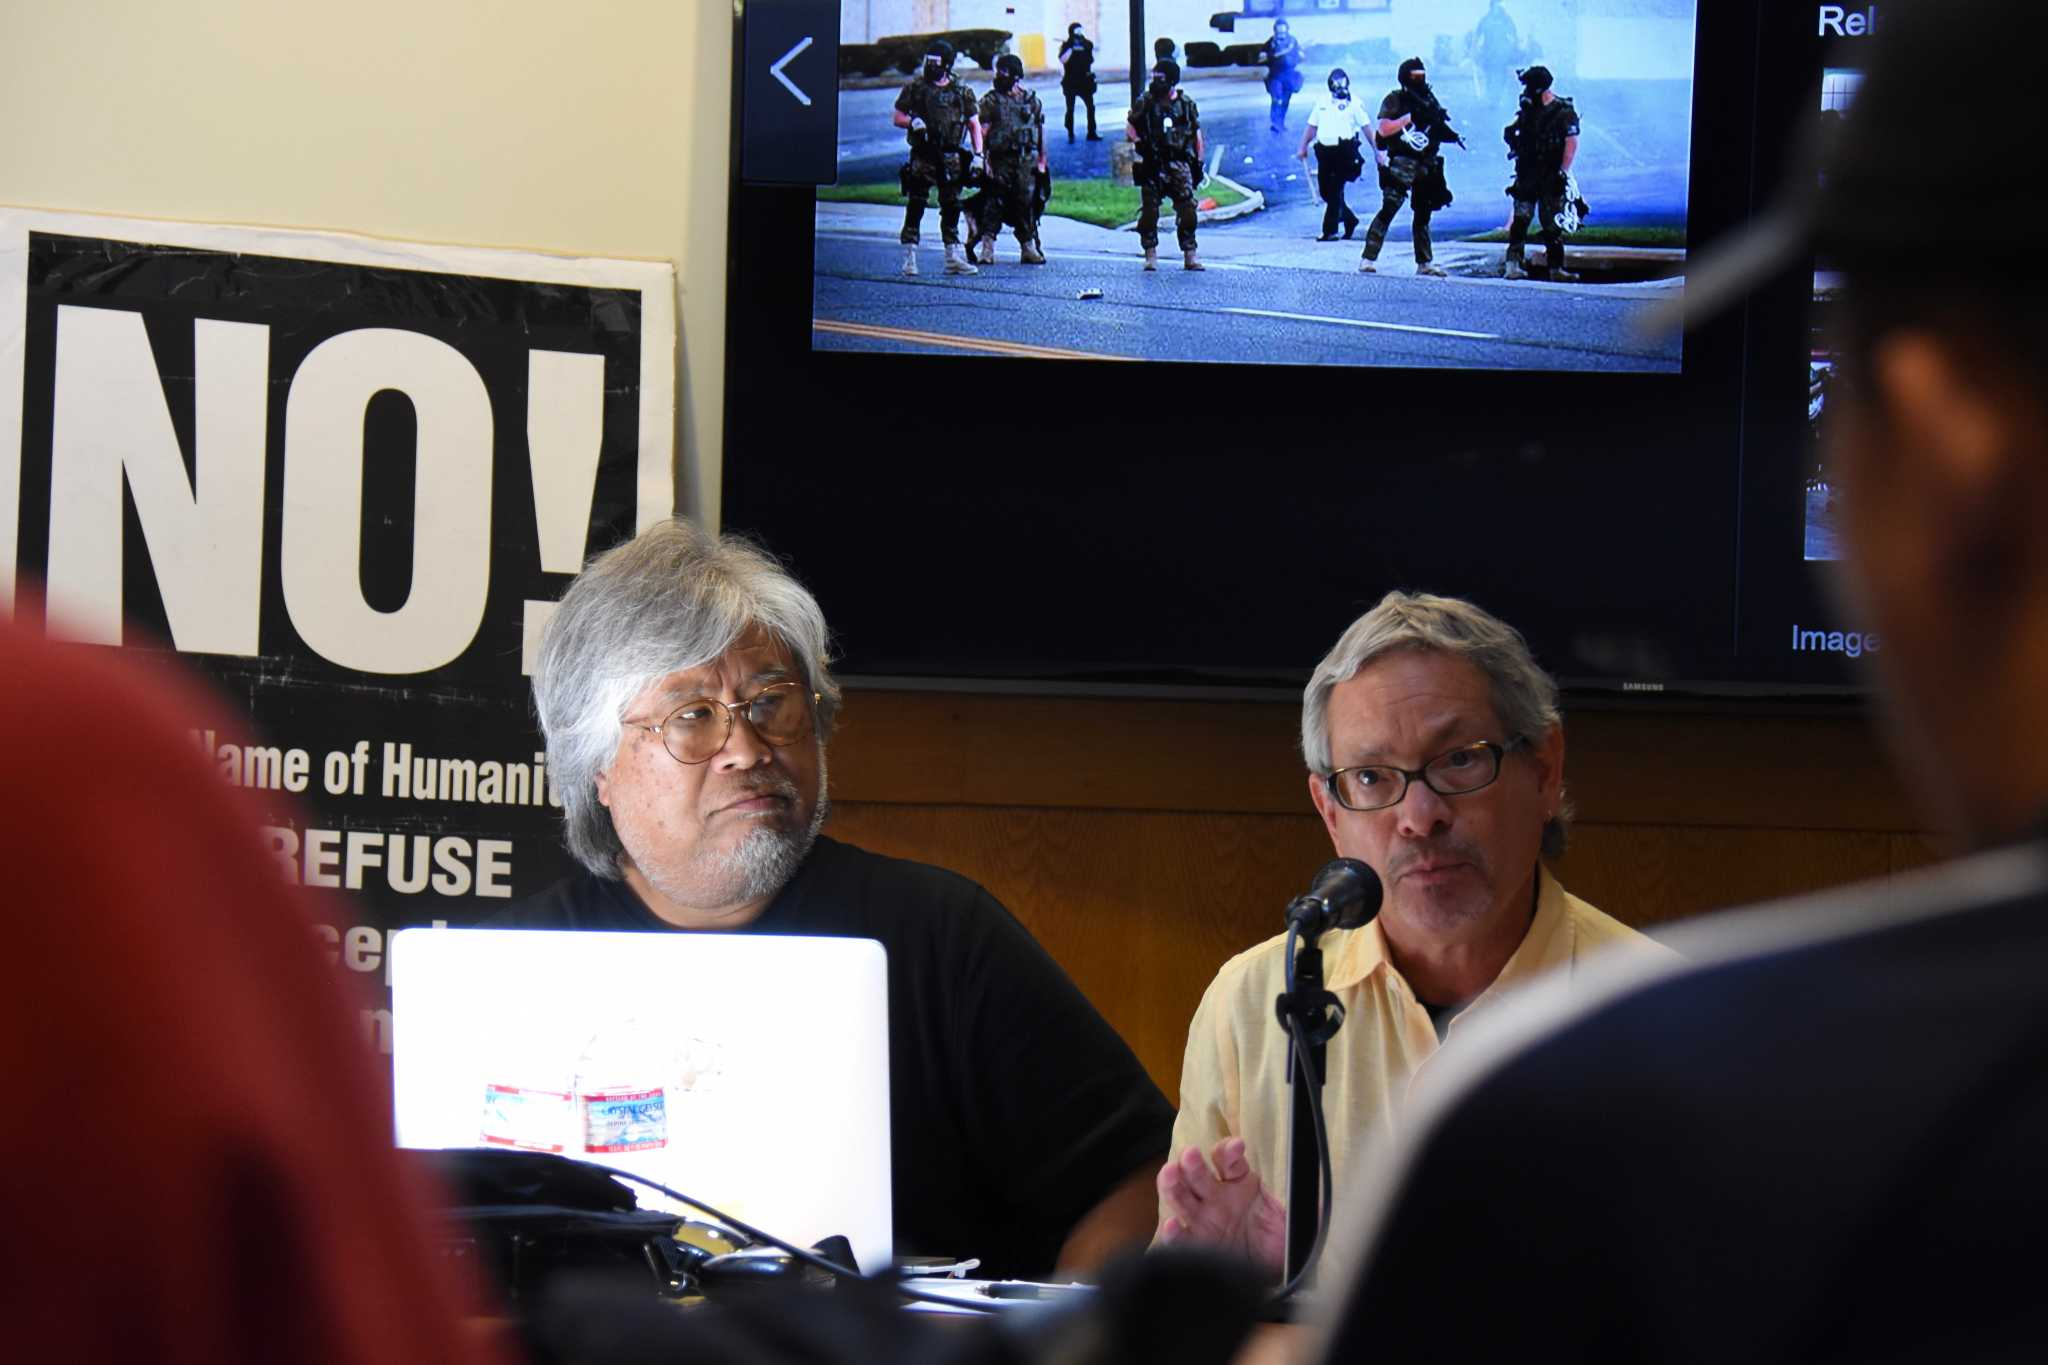 Daniel Phil Gonzales (L), professor of Asian American studies, and James Quesada (R), professor and department chair of anthropology, speak against fascism at the NO! Refuse Fascism teach-in at SF State on Tuesday, April 25, 2017. (Tate Drucker/Xpress)